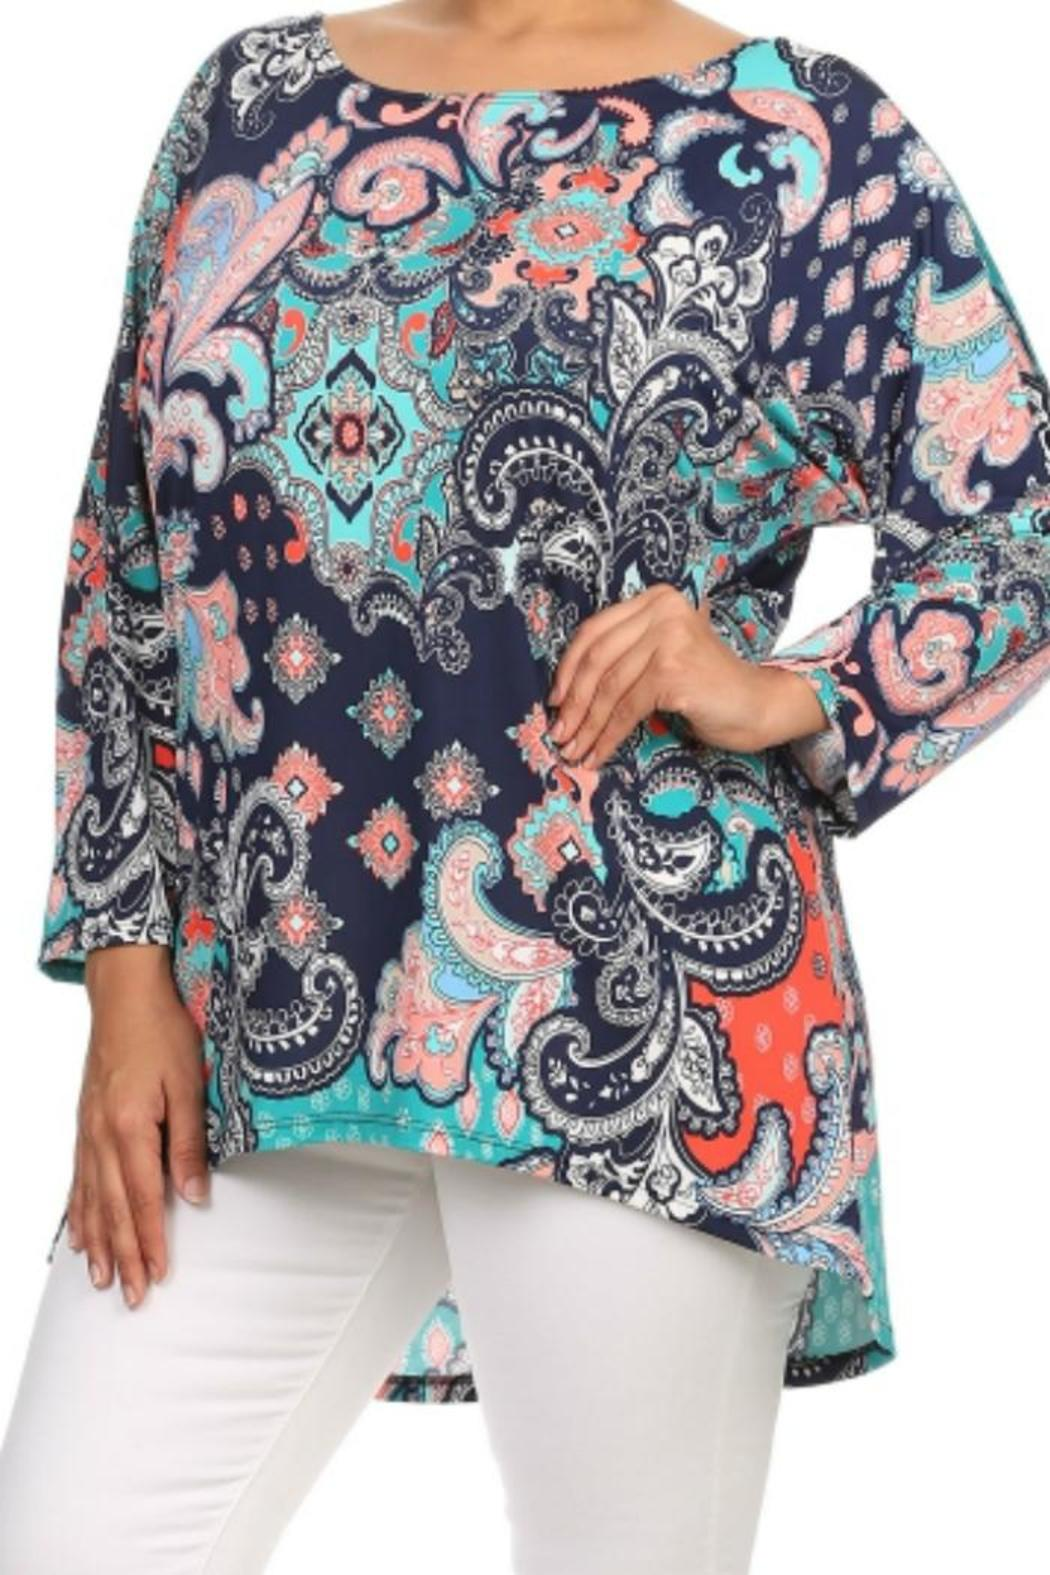 477f8bb510a Moa Fun Paisley Tunic from Ohio by Kelly's Boutique — Shoptiques